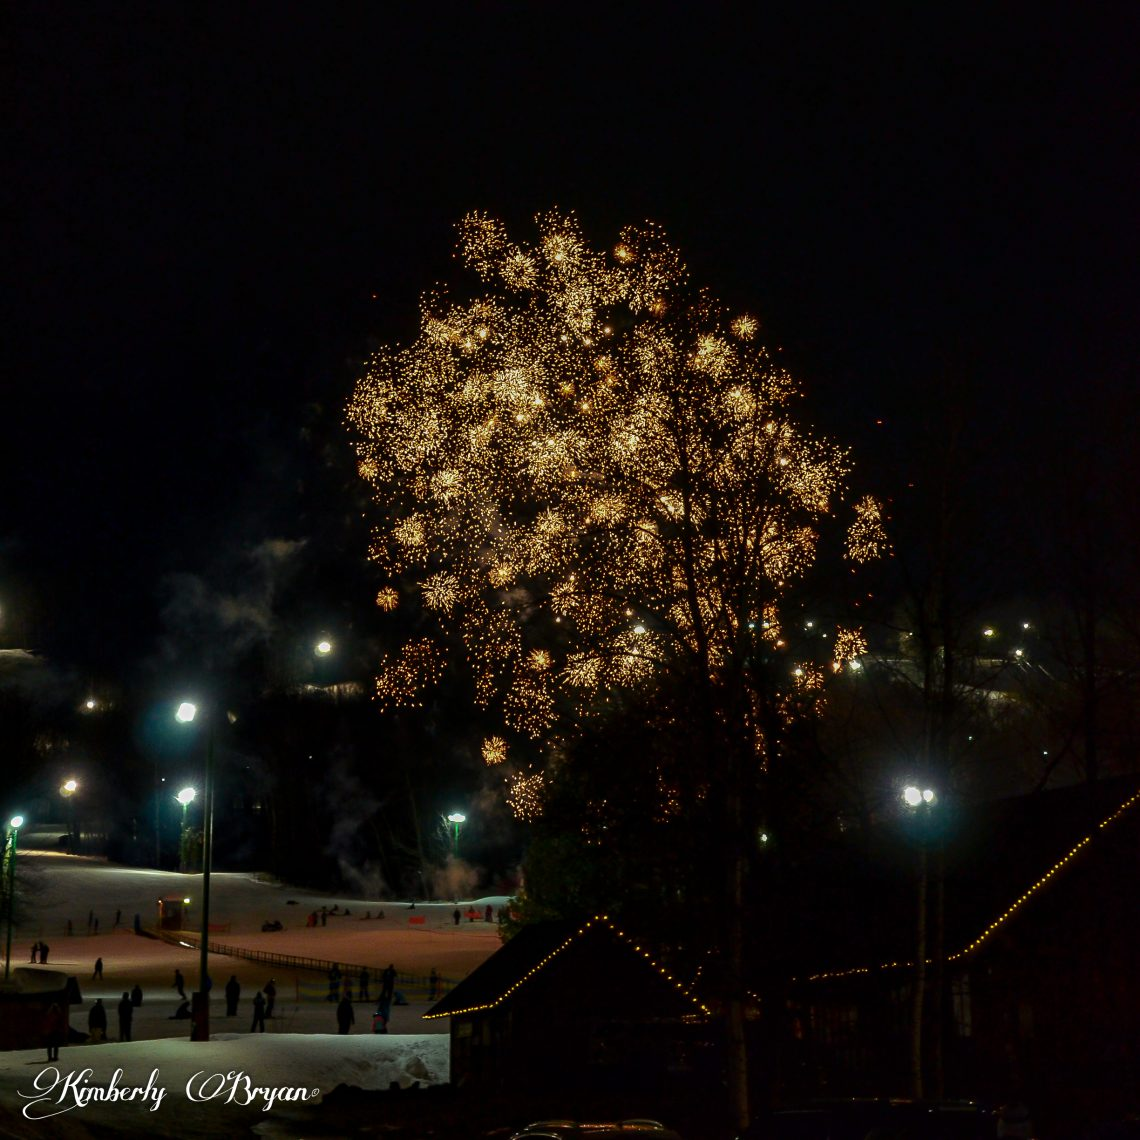 Golden fireworks exploding in the night sky at the Granite Peak Ski Hill.